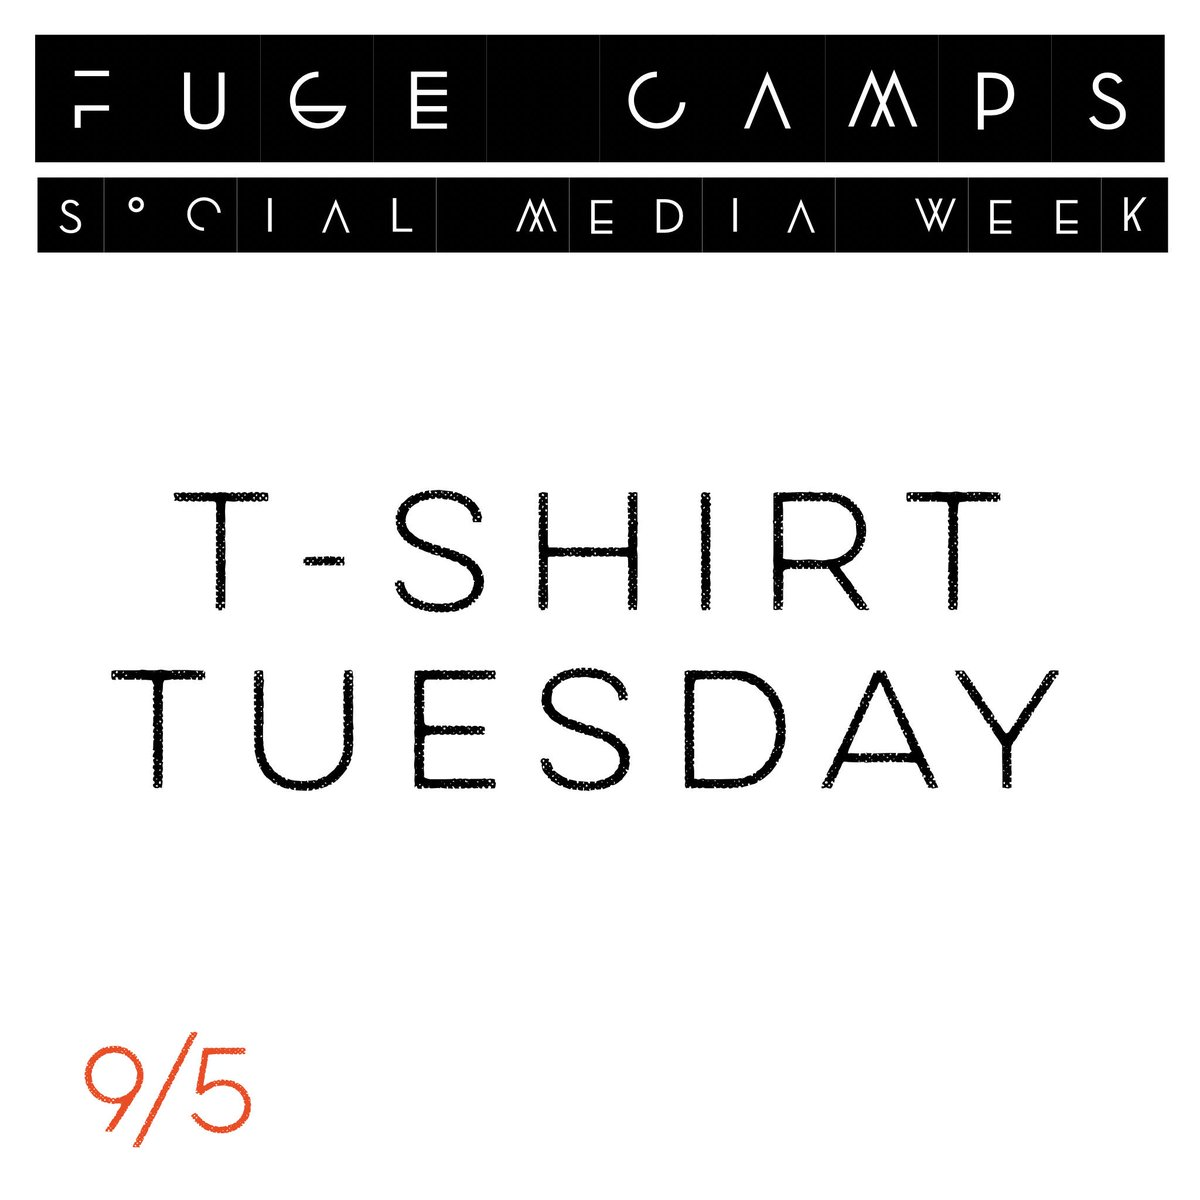 test Twitter Media - TOMORROW: Wear your favorite FUGE t-shirt proudly! Post a pic, tag us, and #fugecamps. Most creative post(s) win prizes! https://t.co/hWacg2VPgN